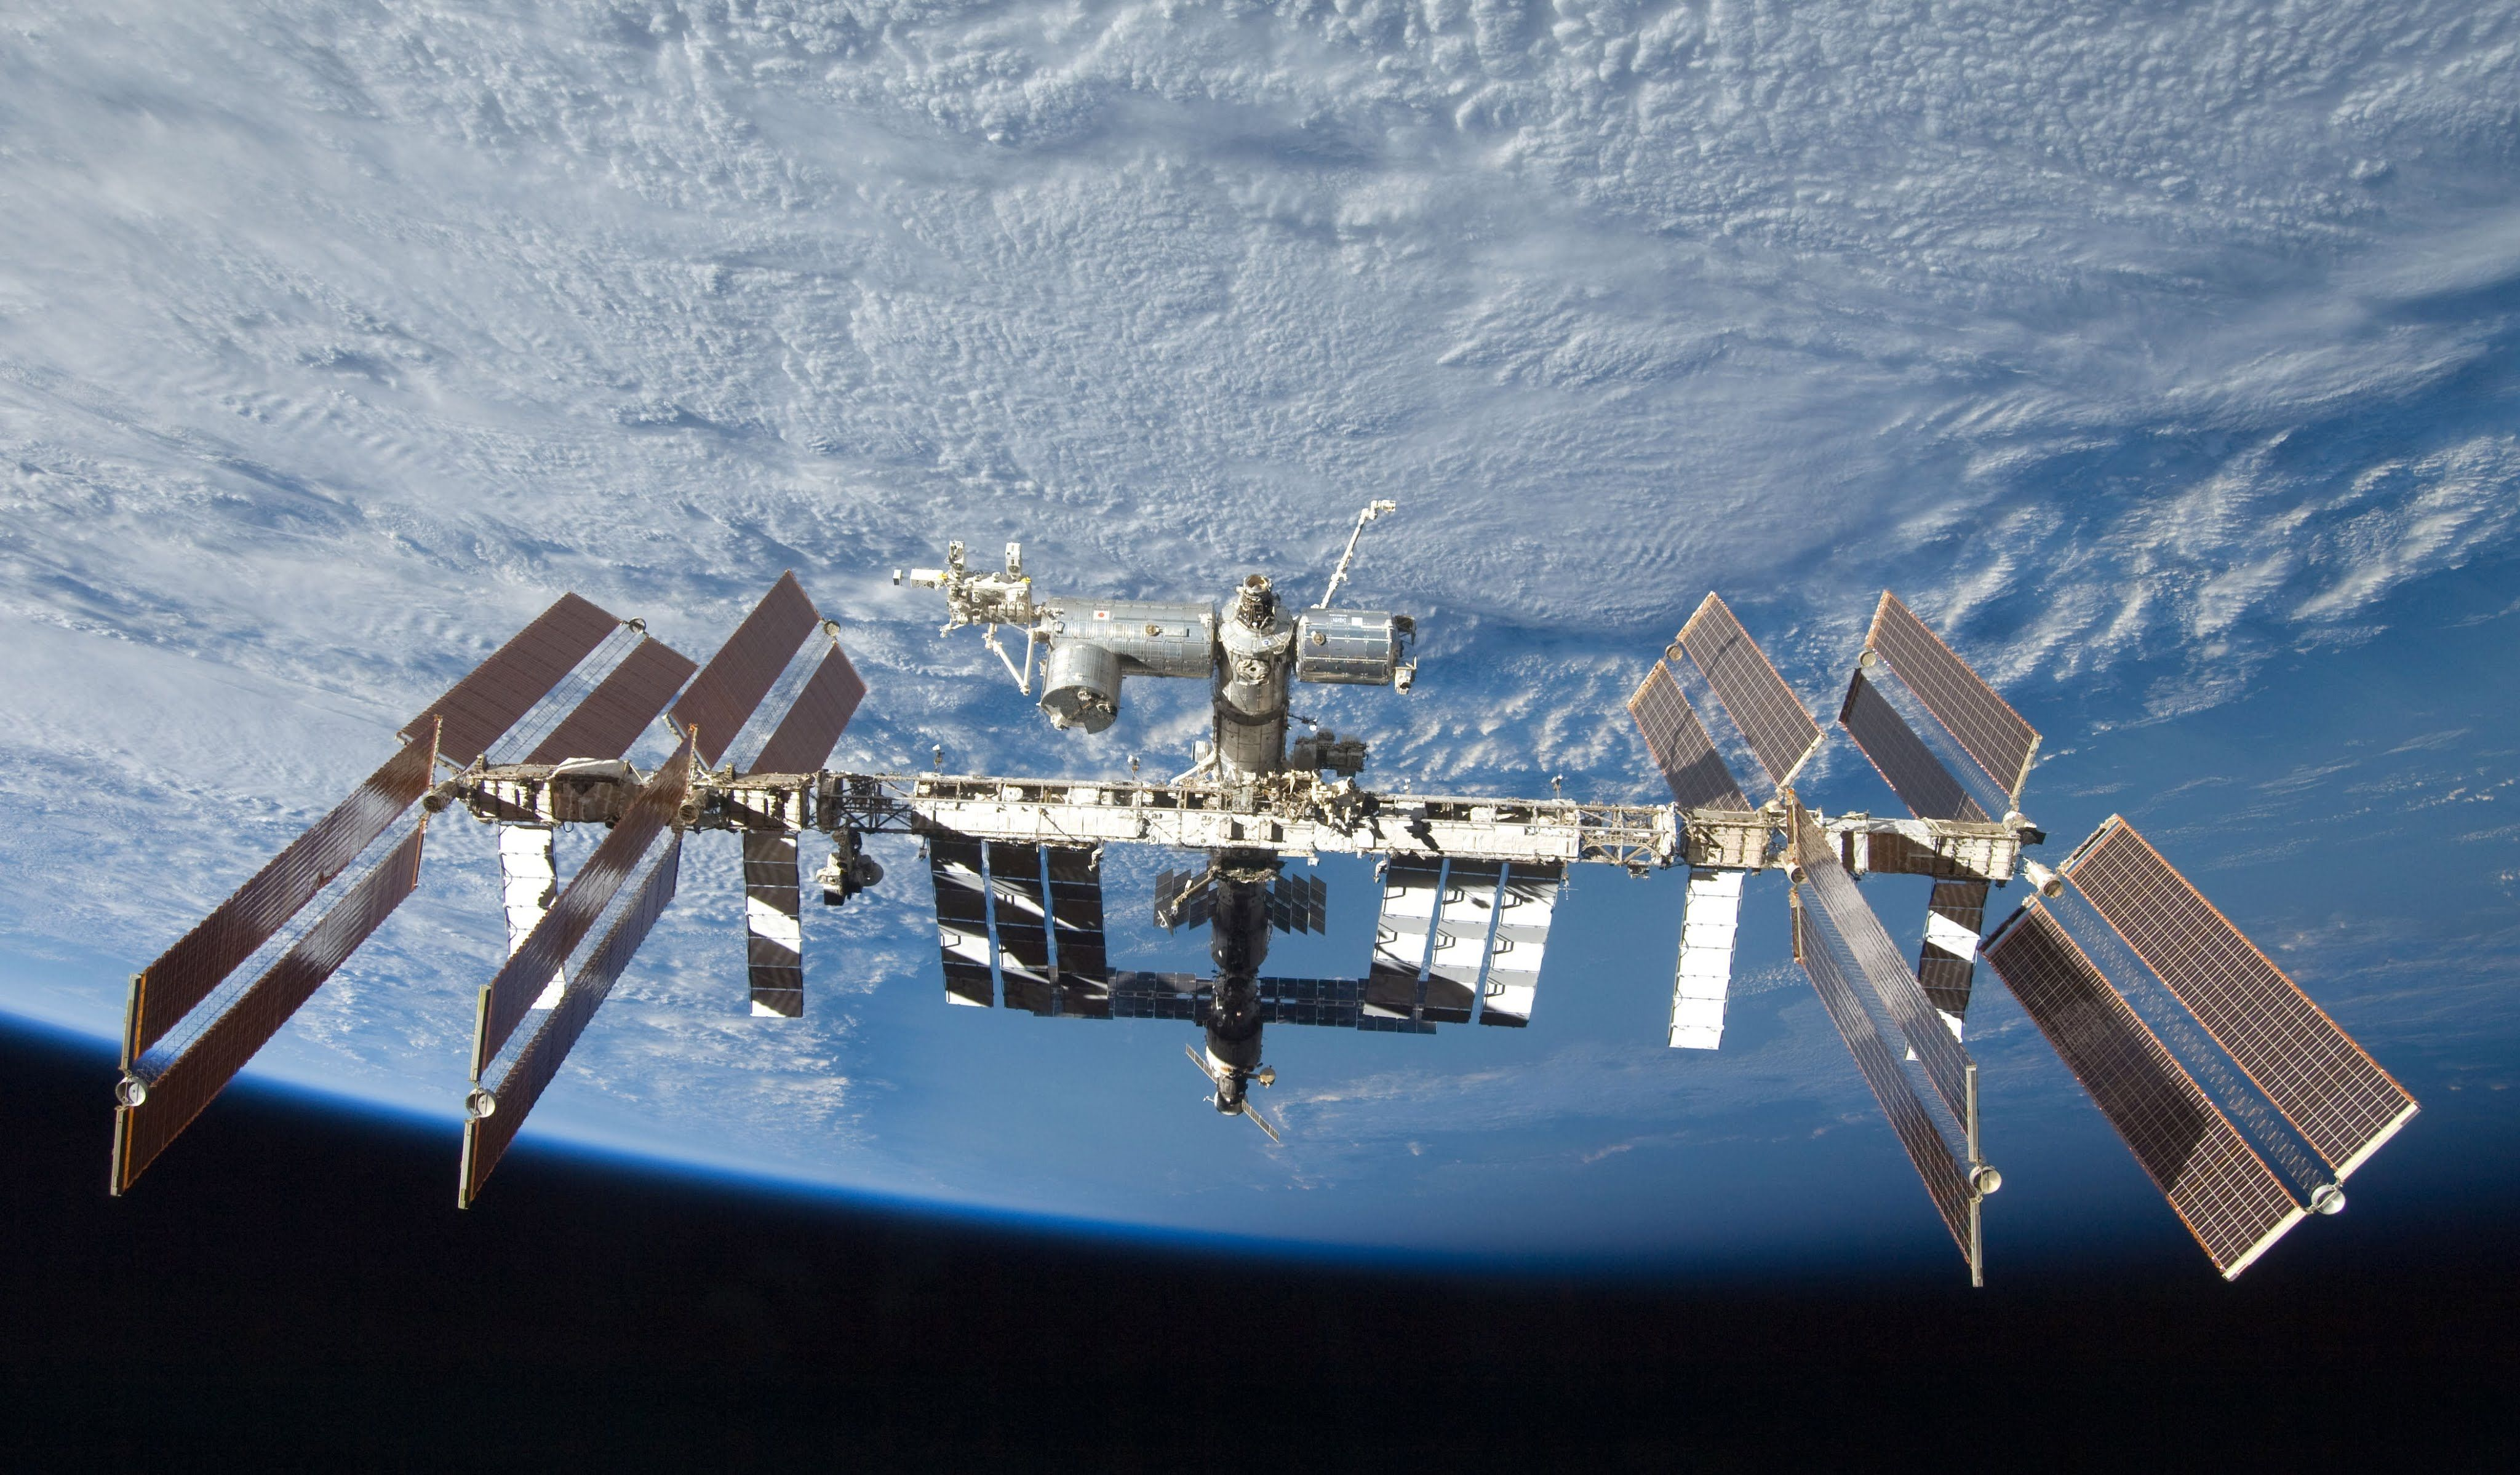 International Space Station (ISS) Real Time Live from NASA